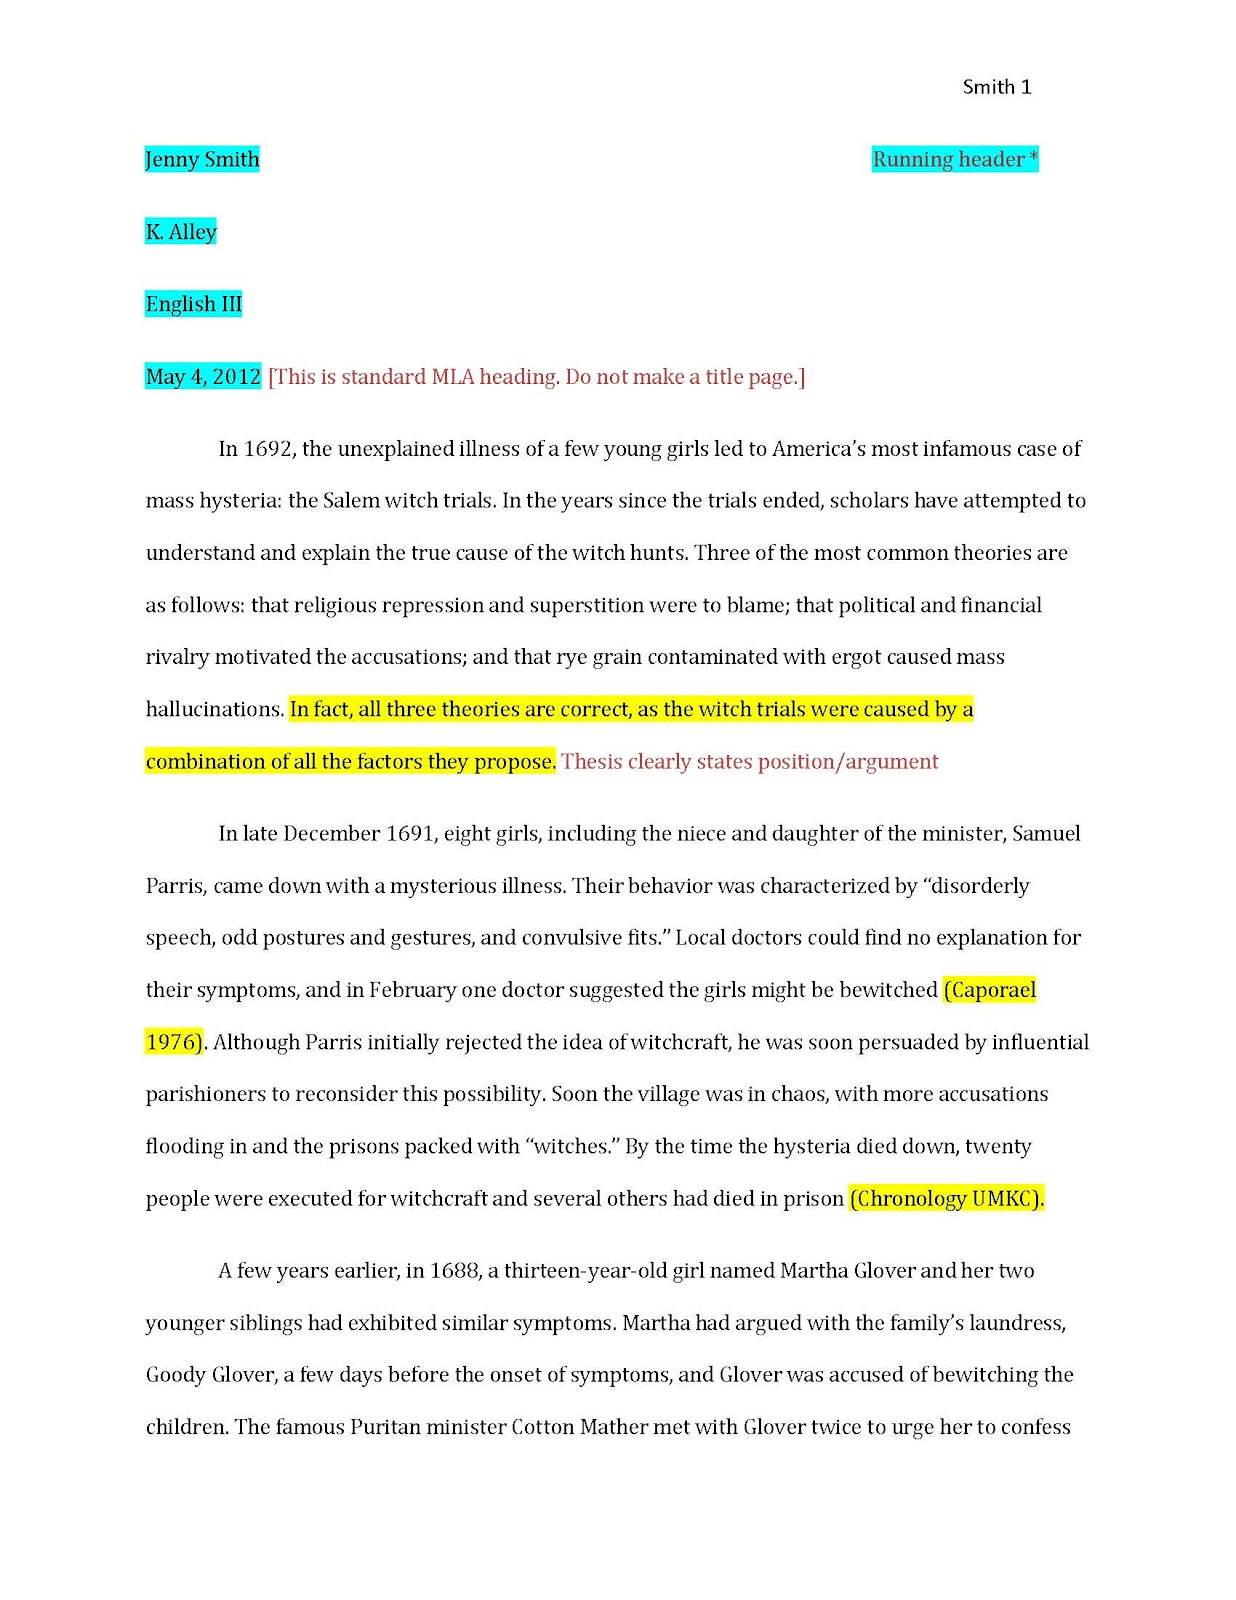 018 Cite Research Paper Generator Examplepaper Page 1 Top Harvard Referencing How To My Sources In Mla Format Full